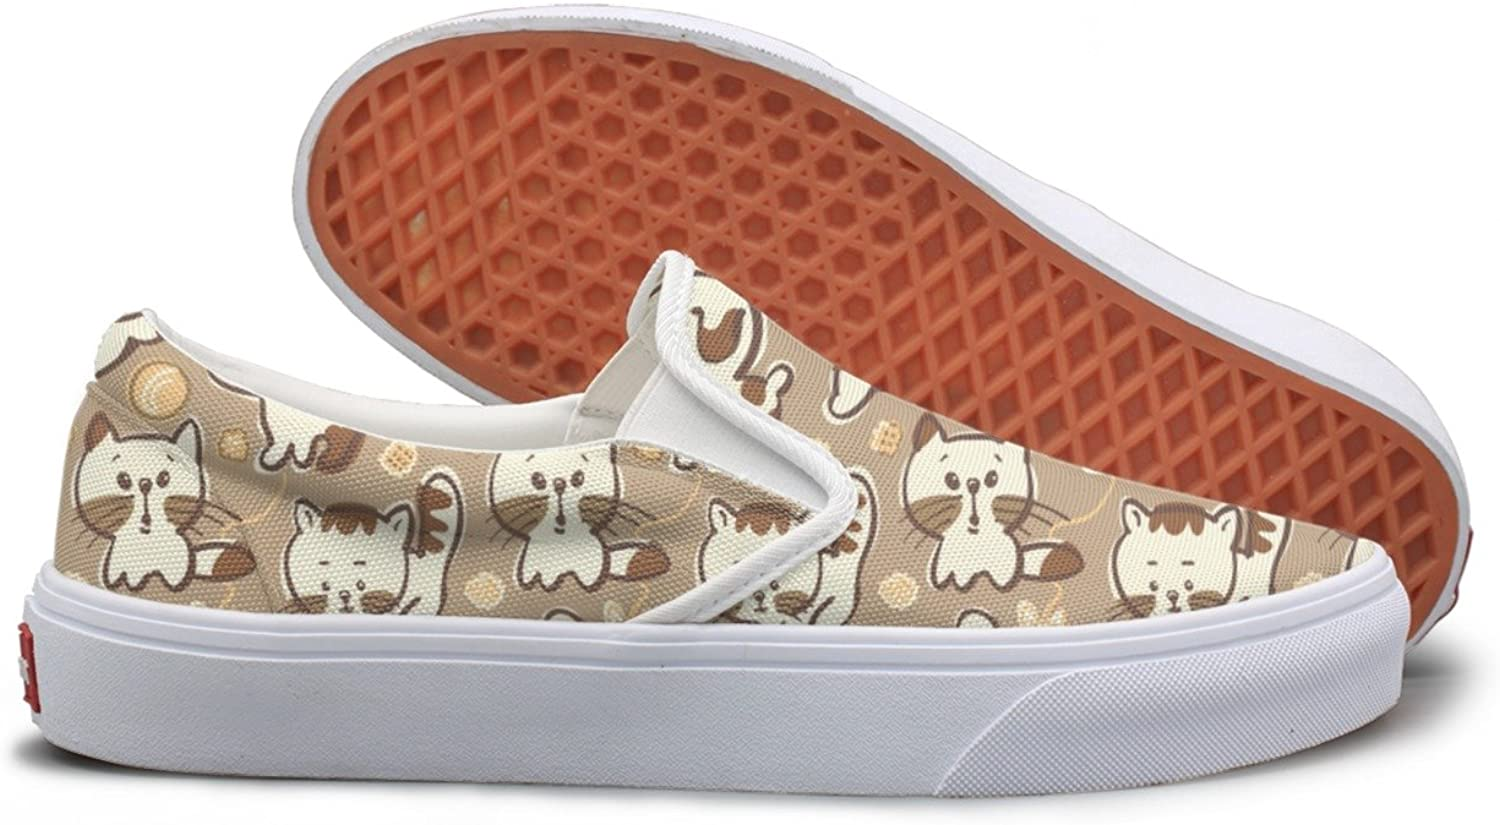 Cute Puppies And Kittens Casual Sneakers For Women Wide Width